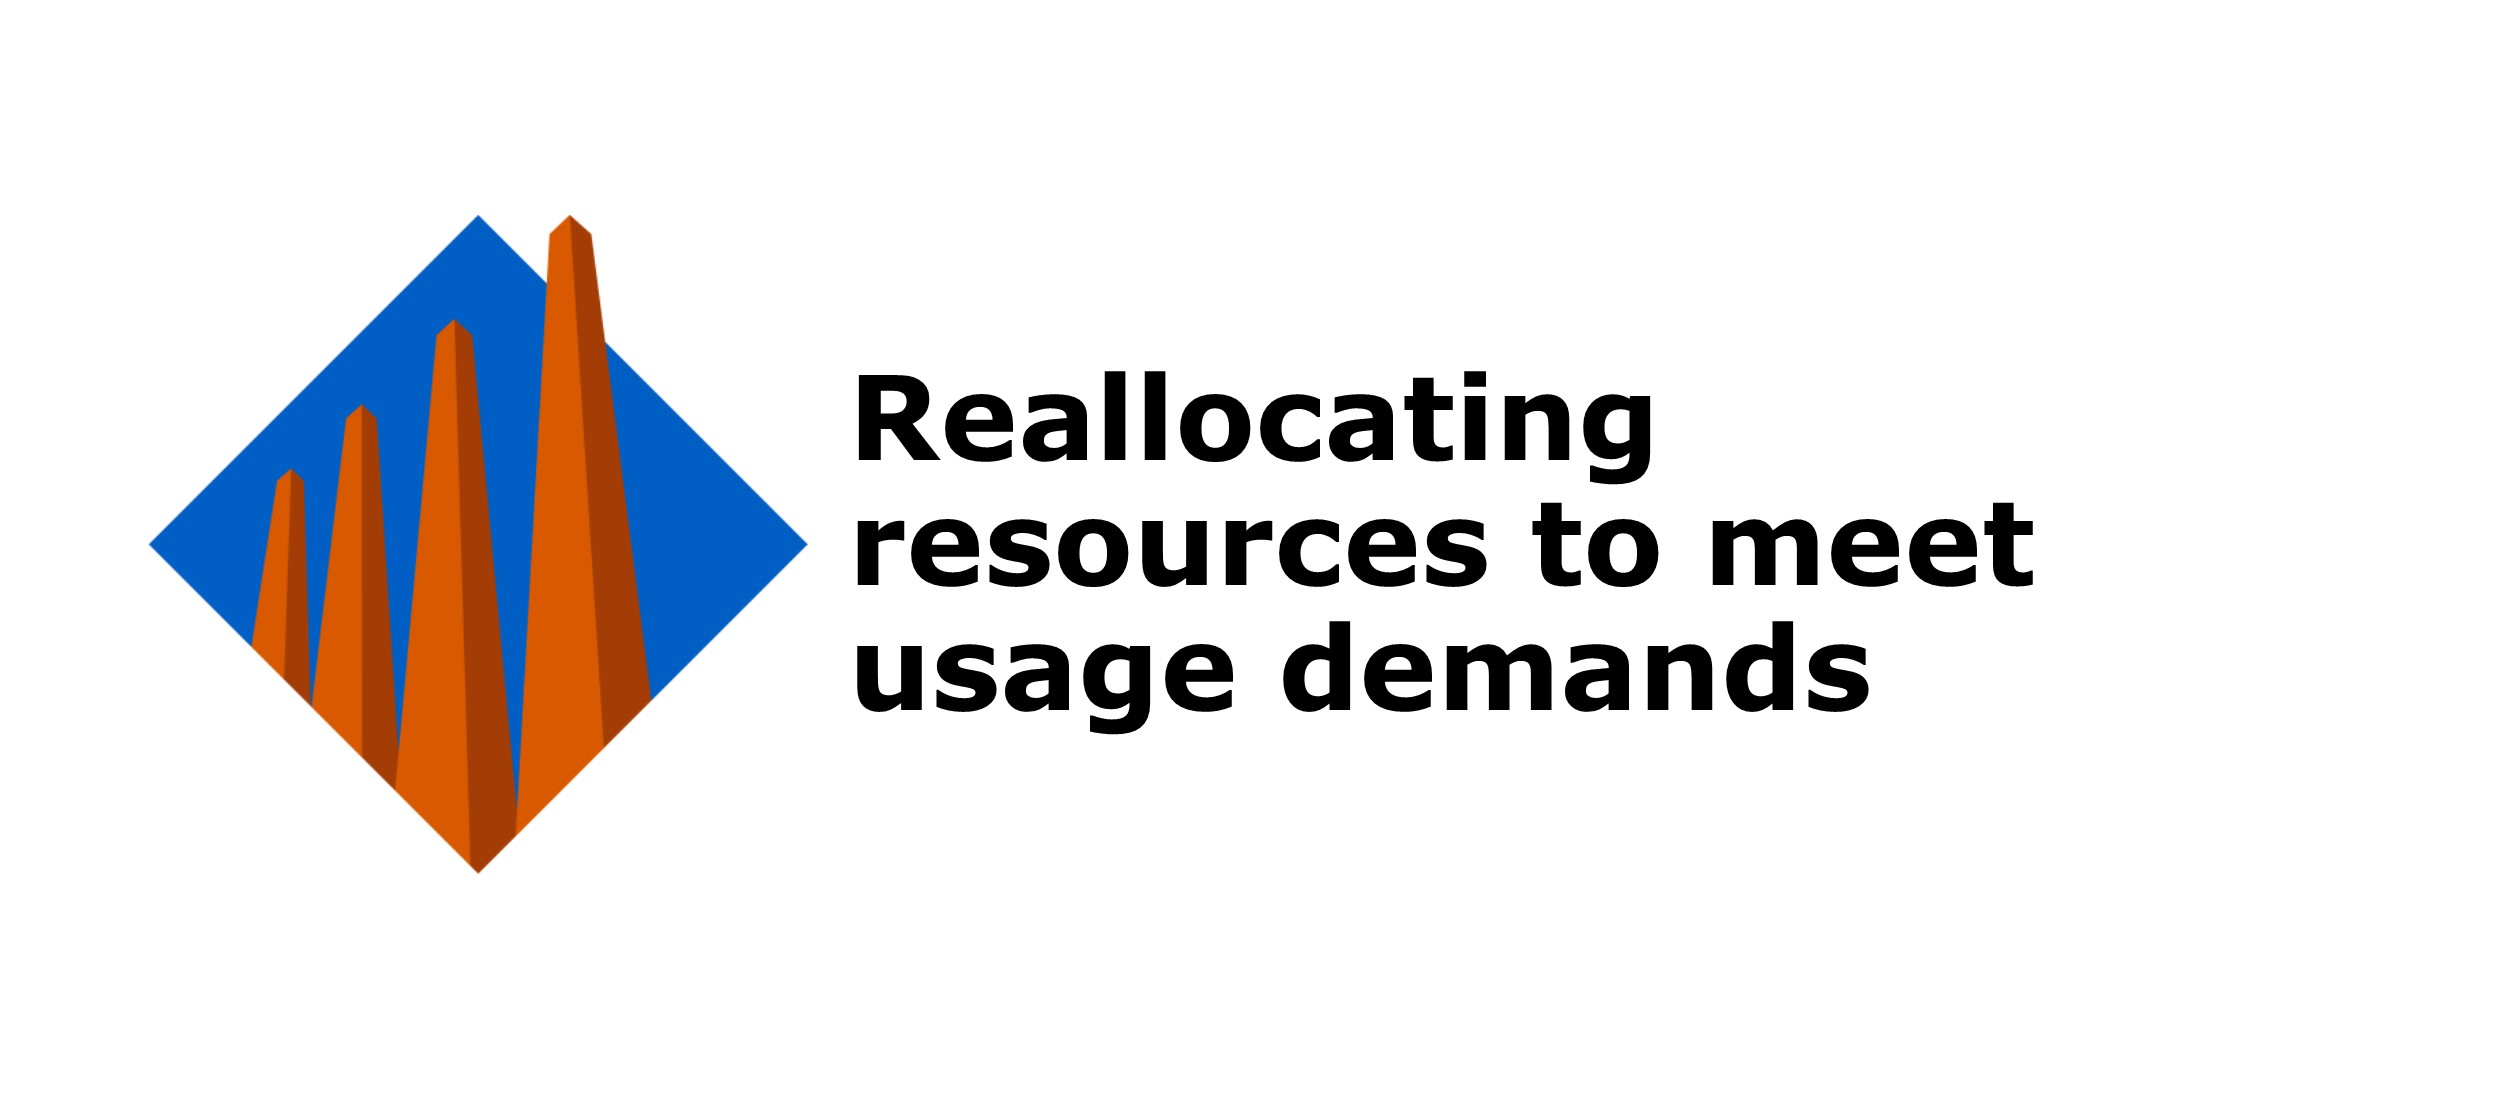 Reallocating resources to meet usage demands